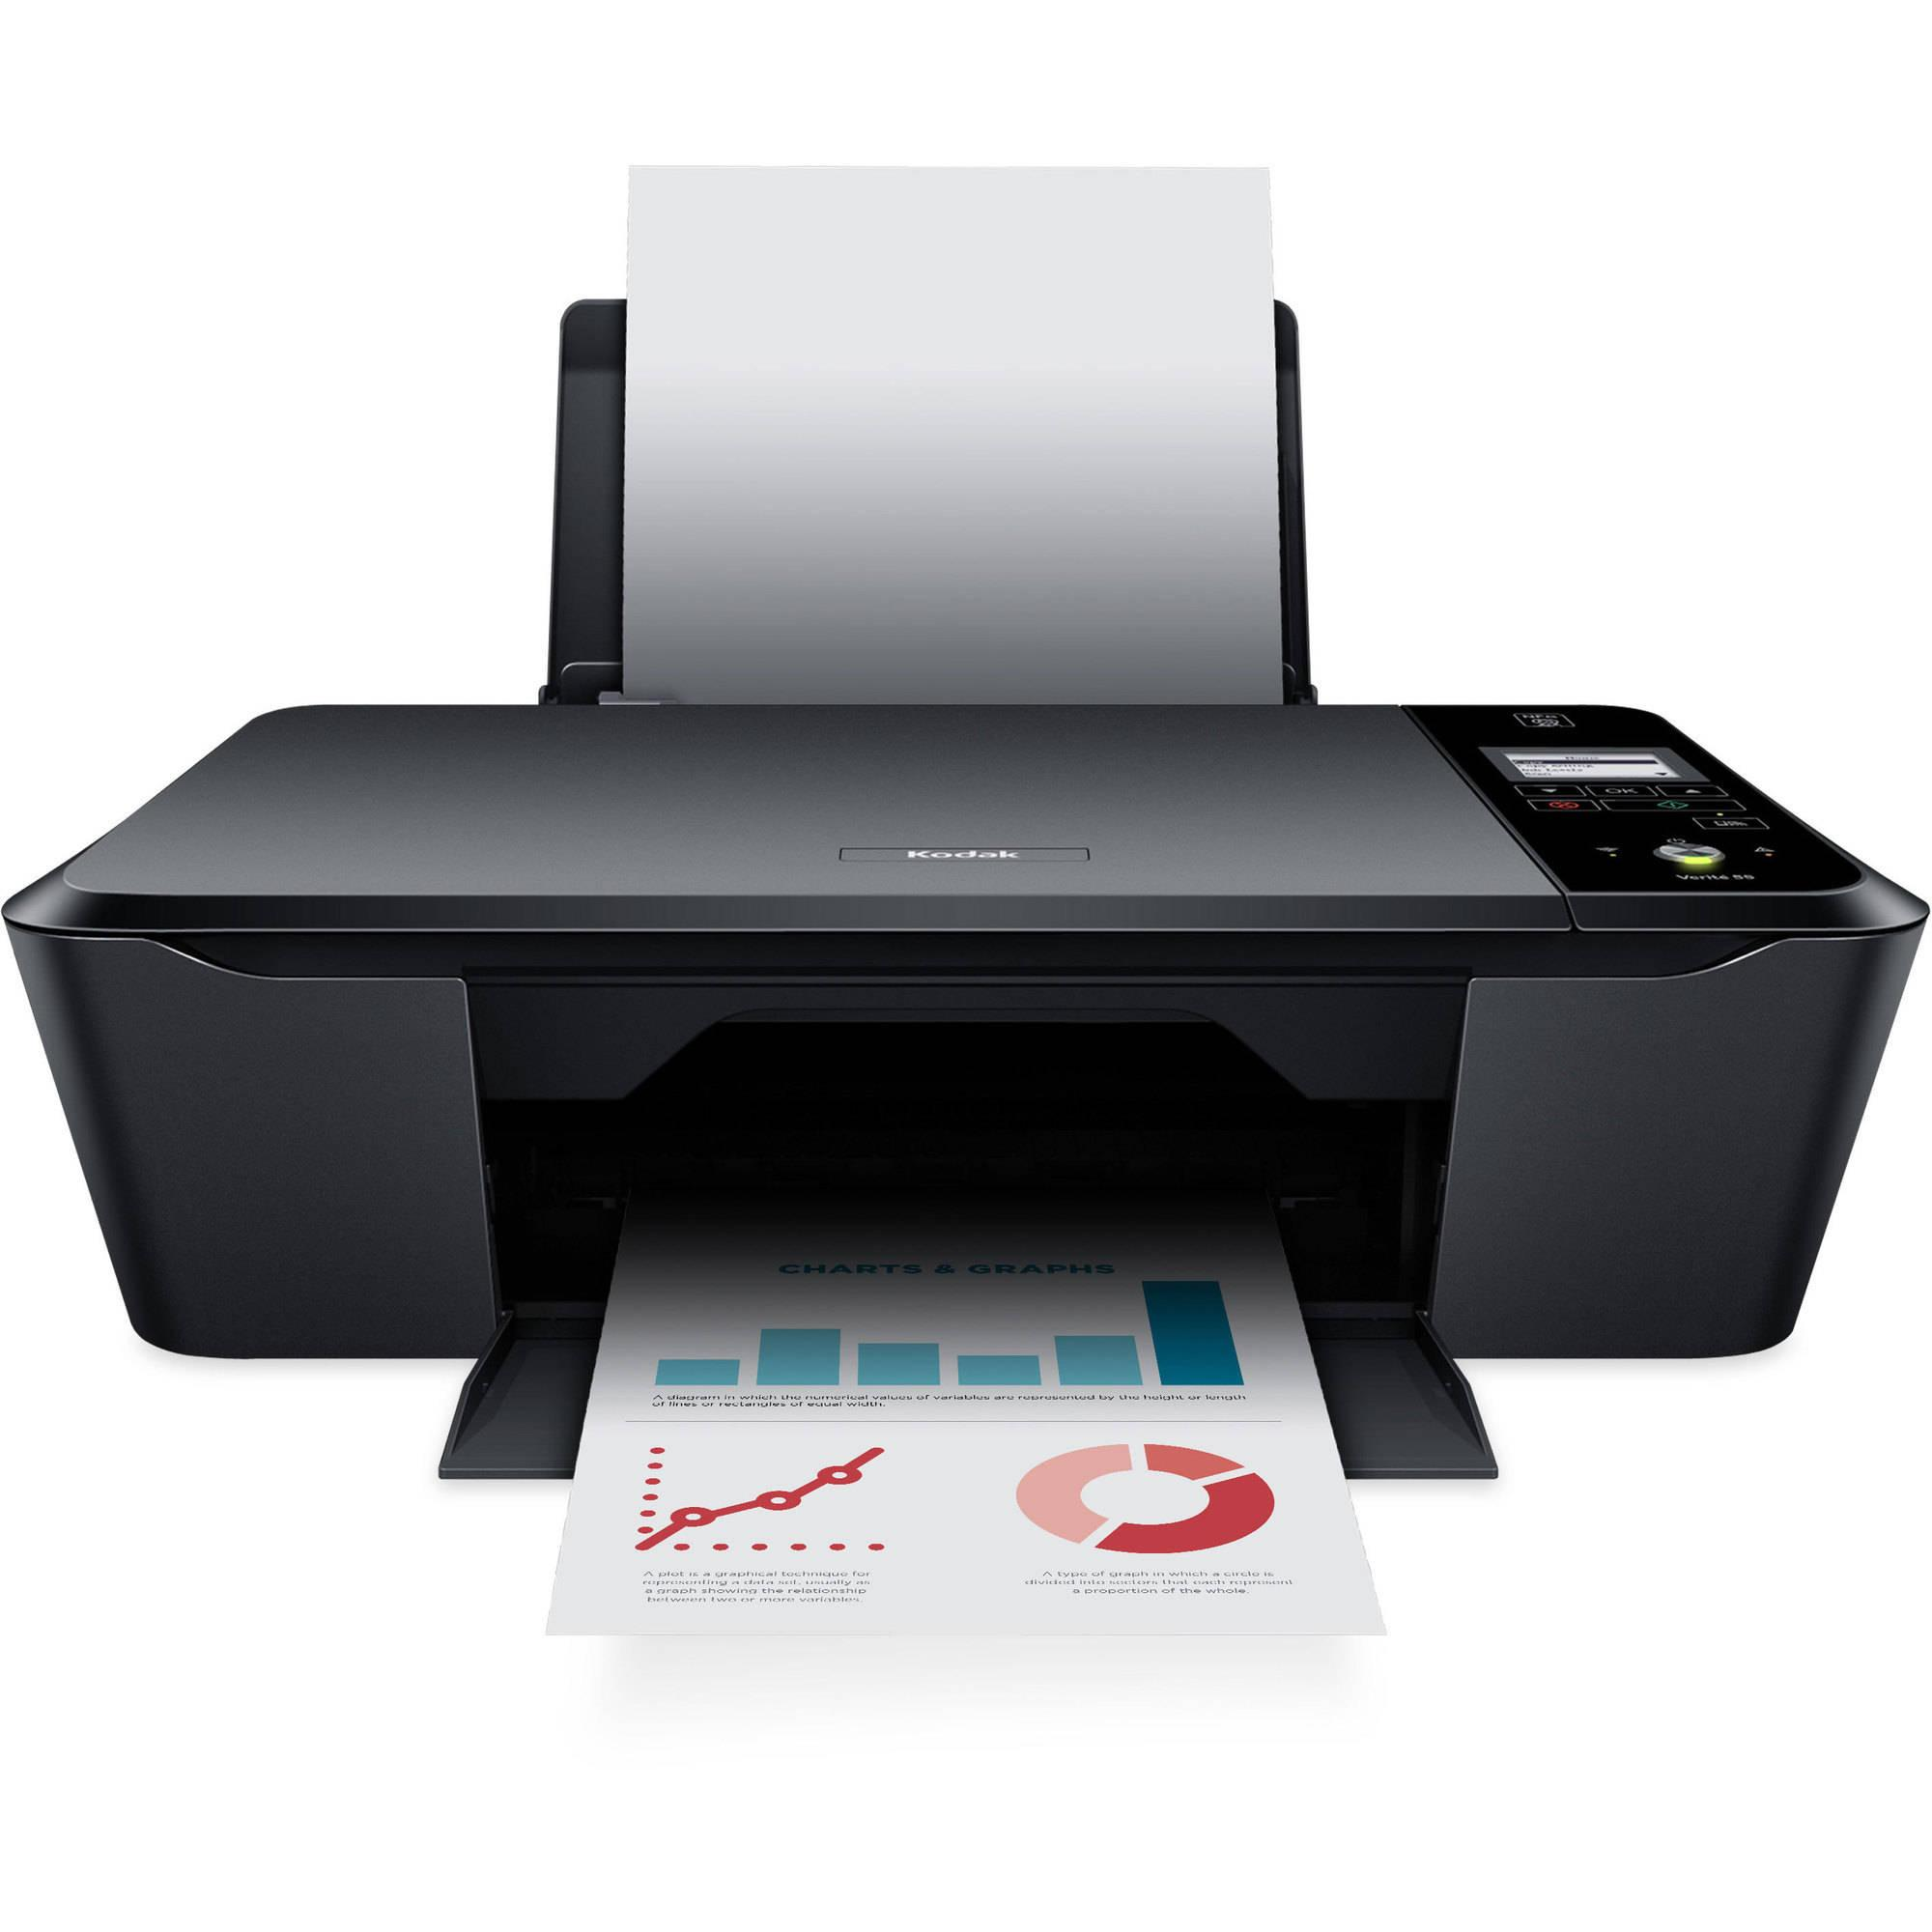 Refurbished Kodak VERITE55 All-In-One Wireless Inkjet Printer